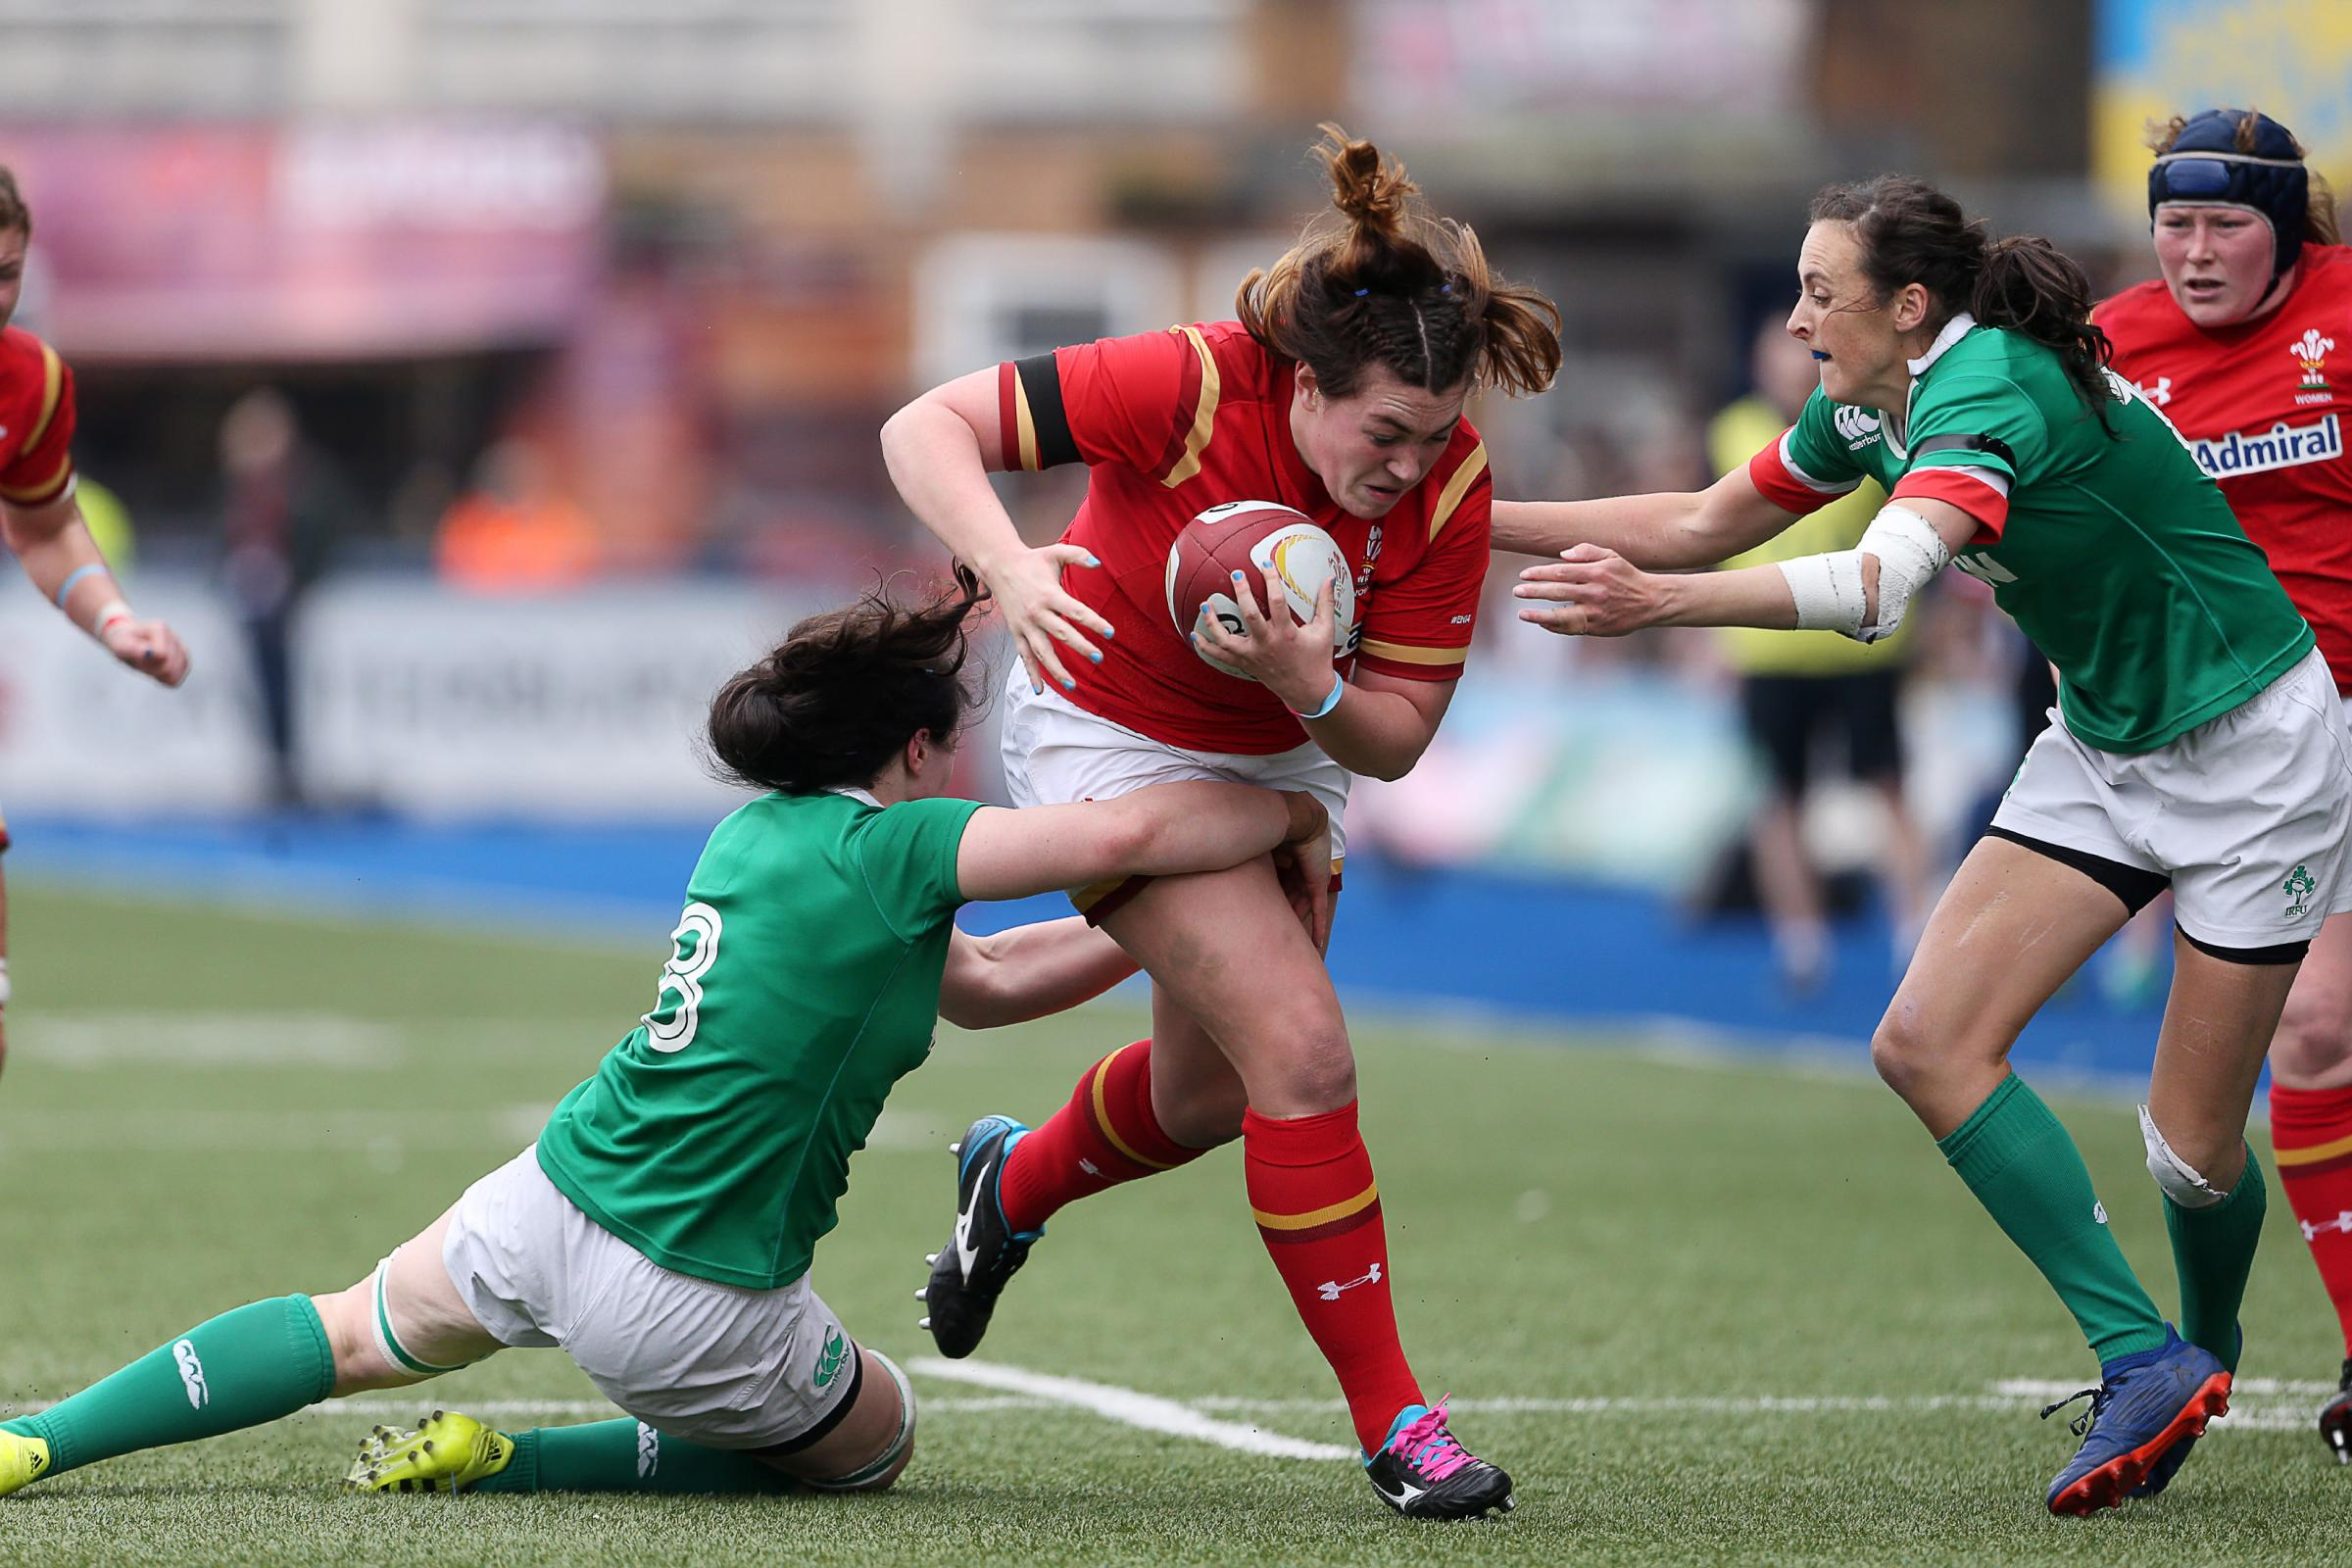 FORWARD POWER: Cerys Hale in action against Ireland in last year's Six Nations